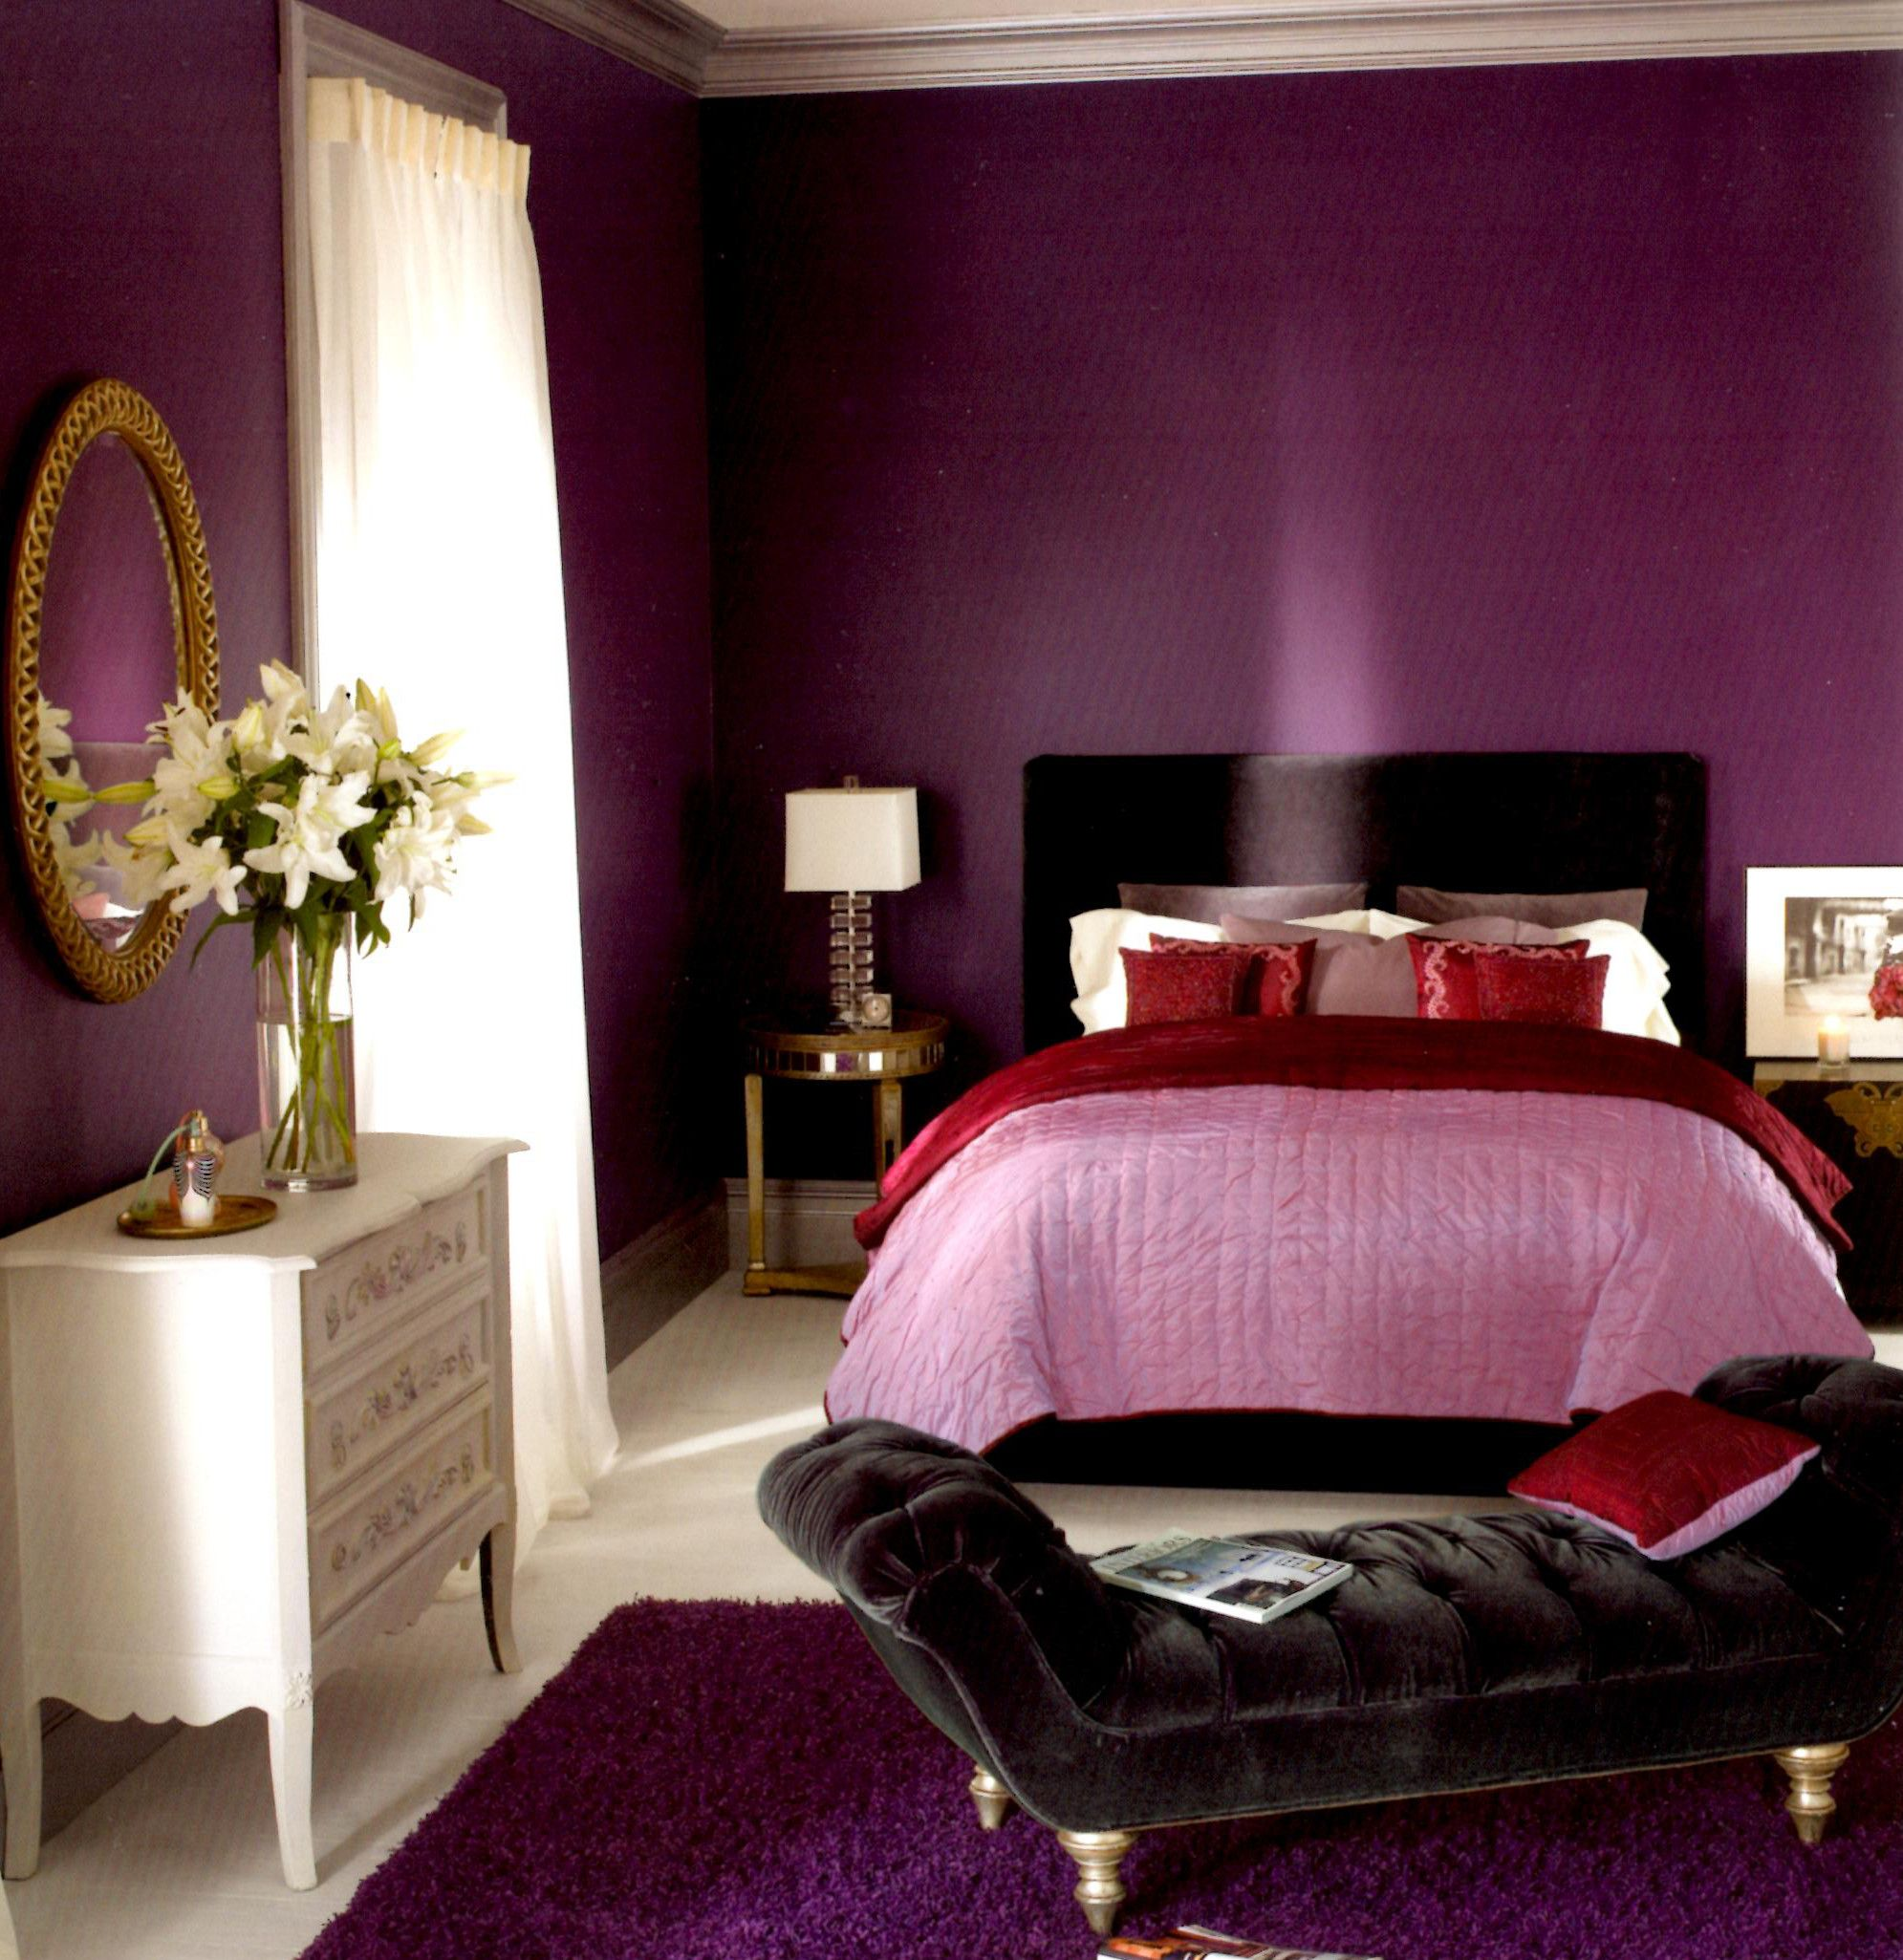 Paint Color Bedrooms Remarkable Purple Wall Paneling Colors As Smart Bedroom Paint